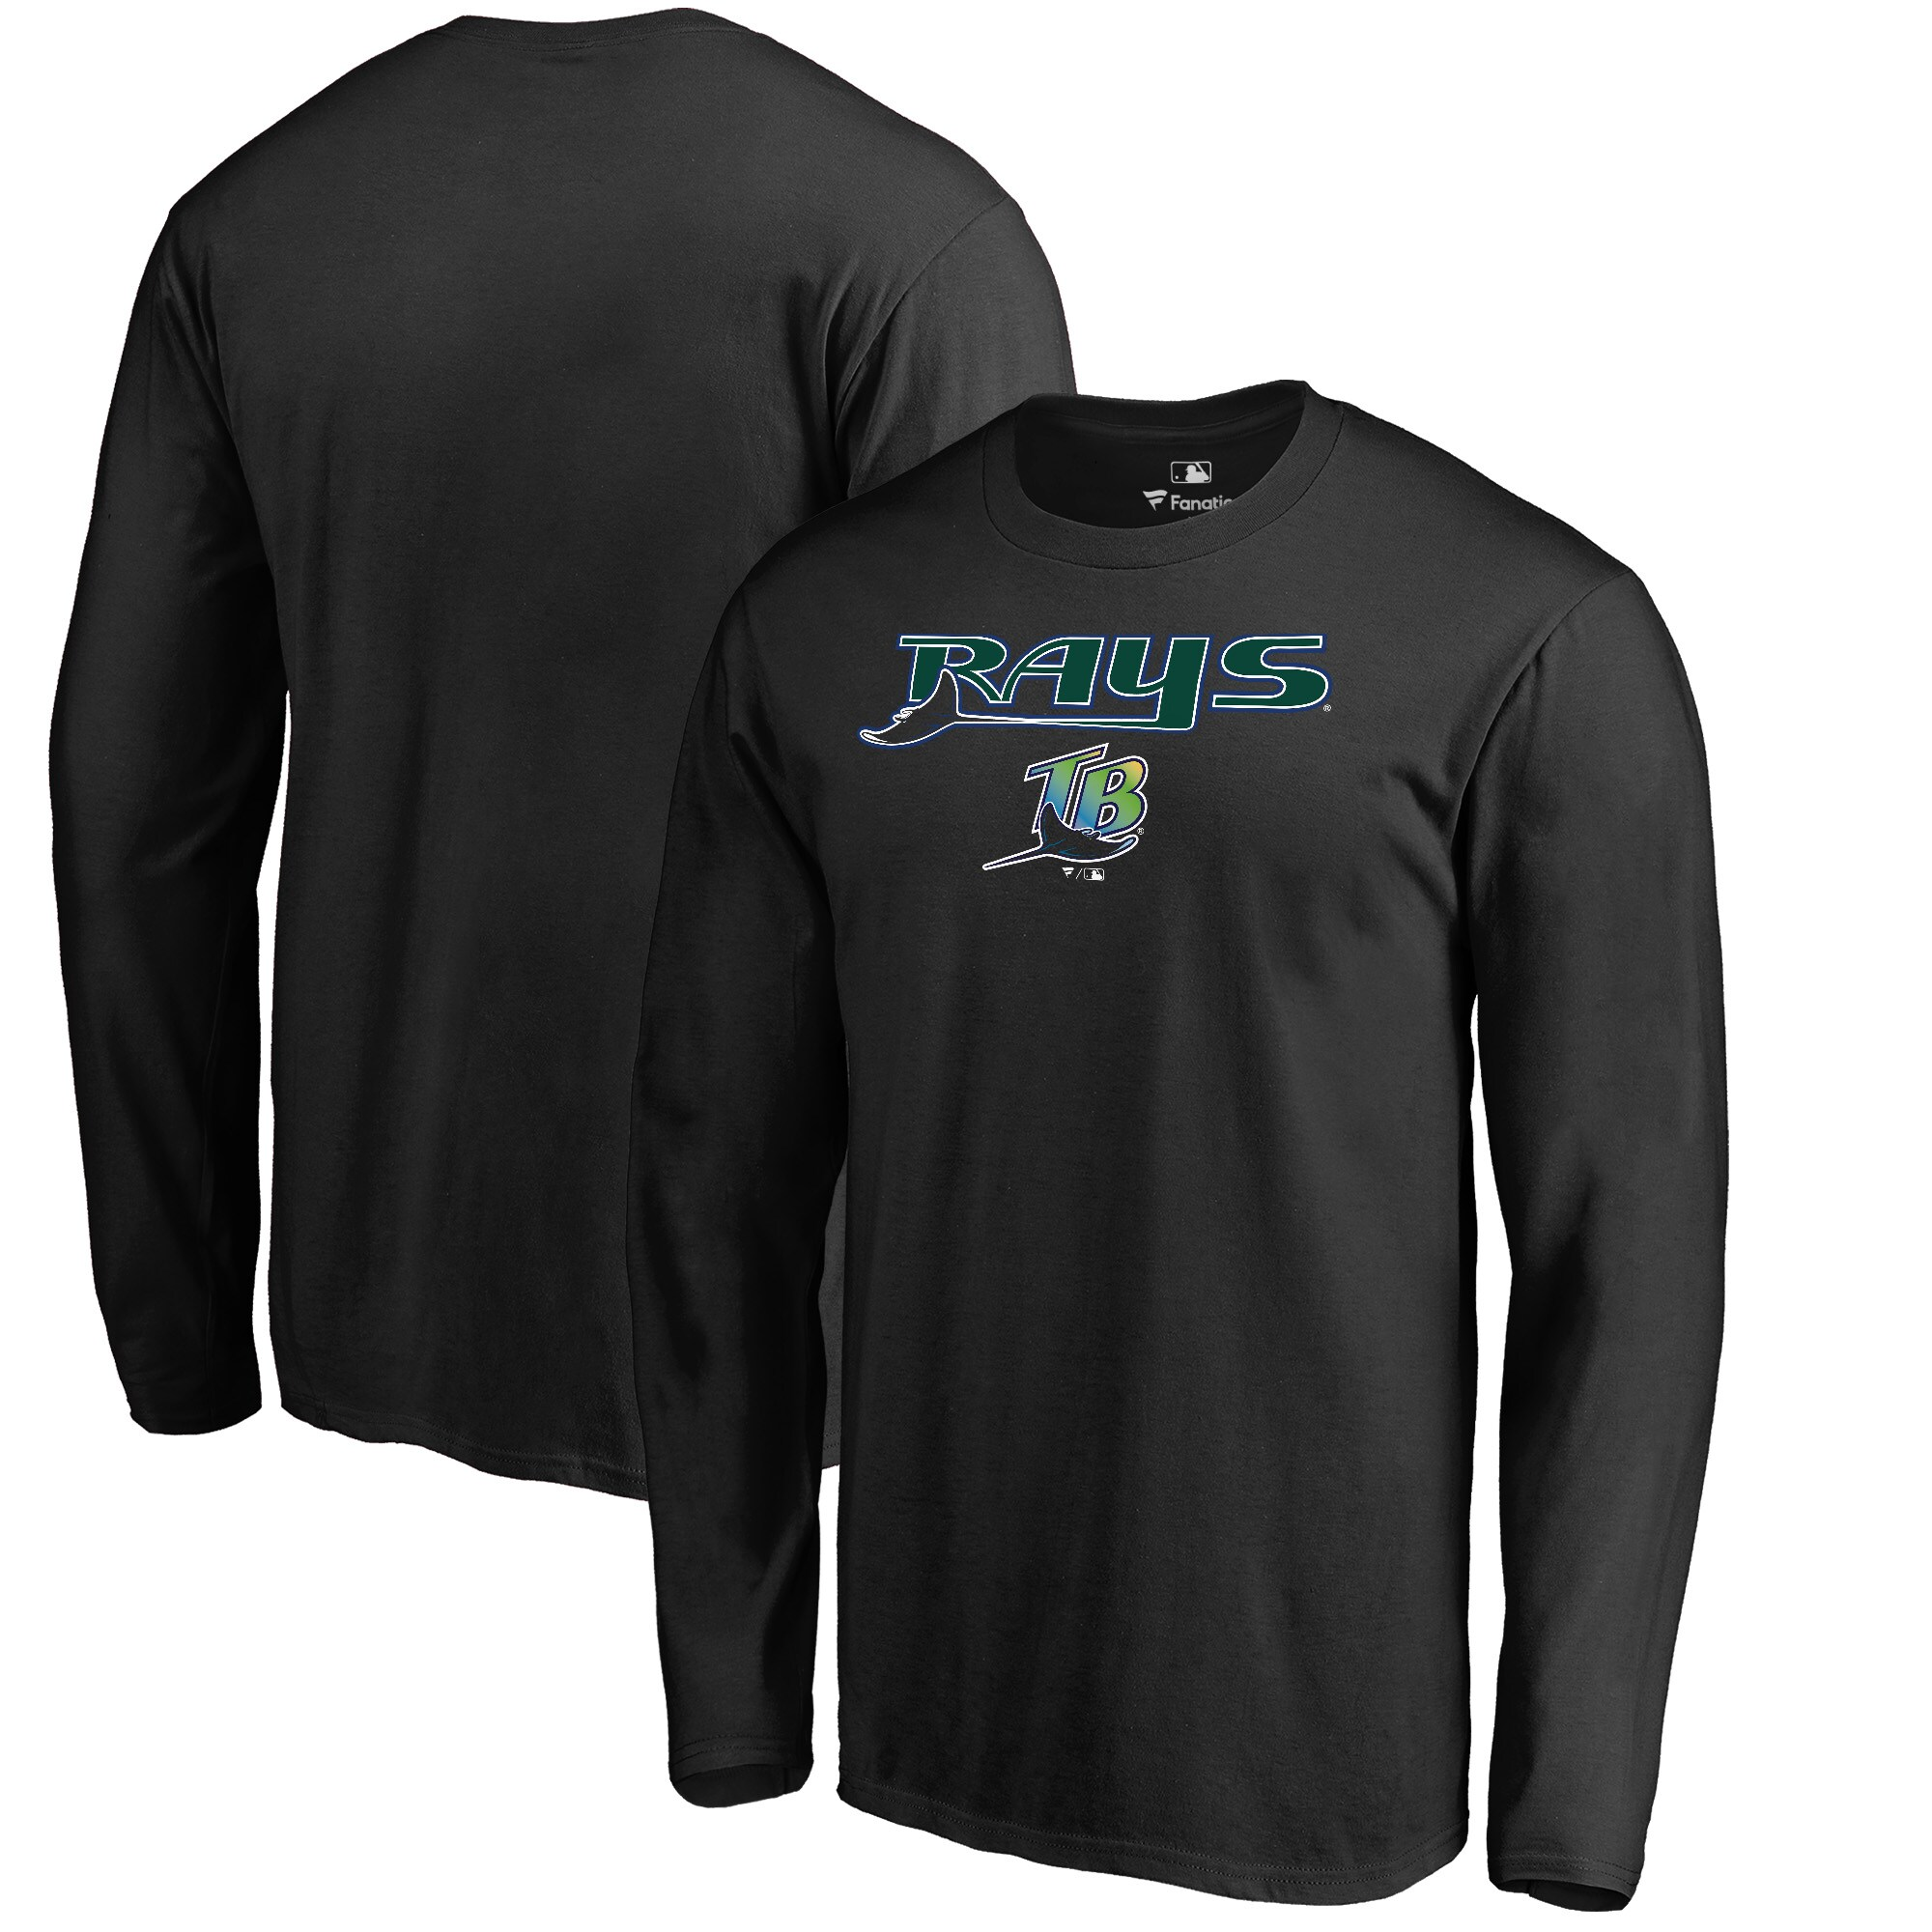 Tampa Bay Rays Fanatics Branded Cooperstown Collection Wahconah Long Sleeve T-Shirt - Black